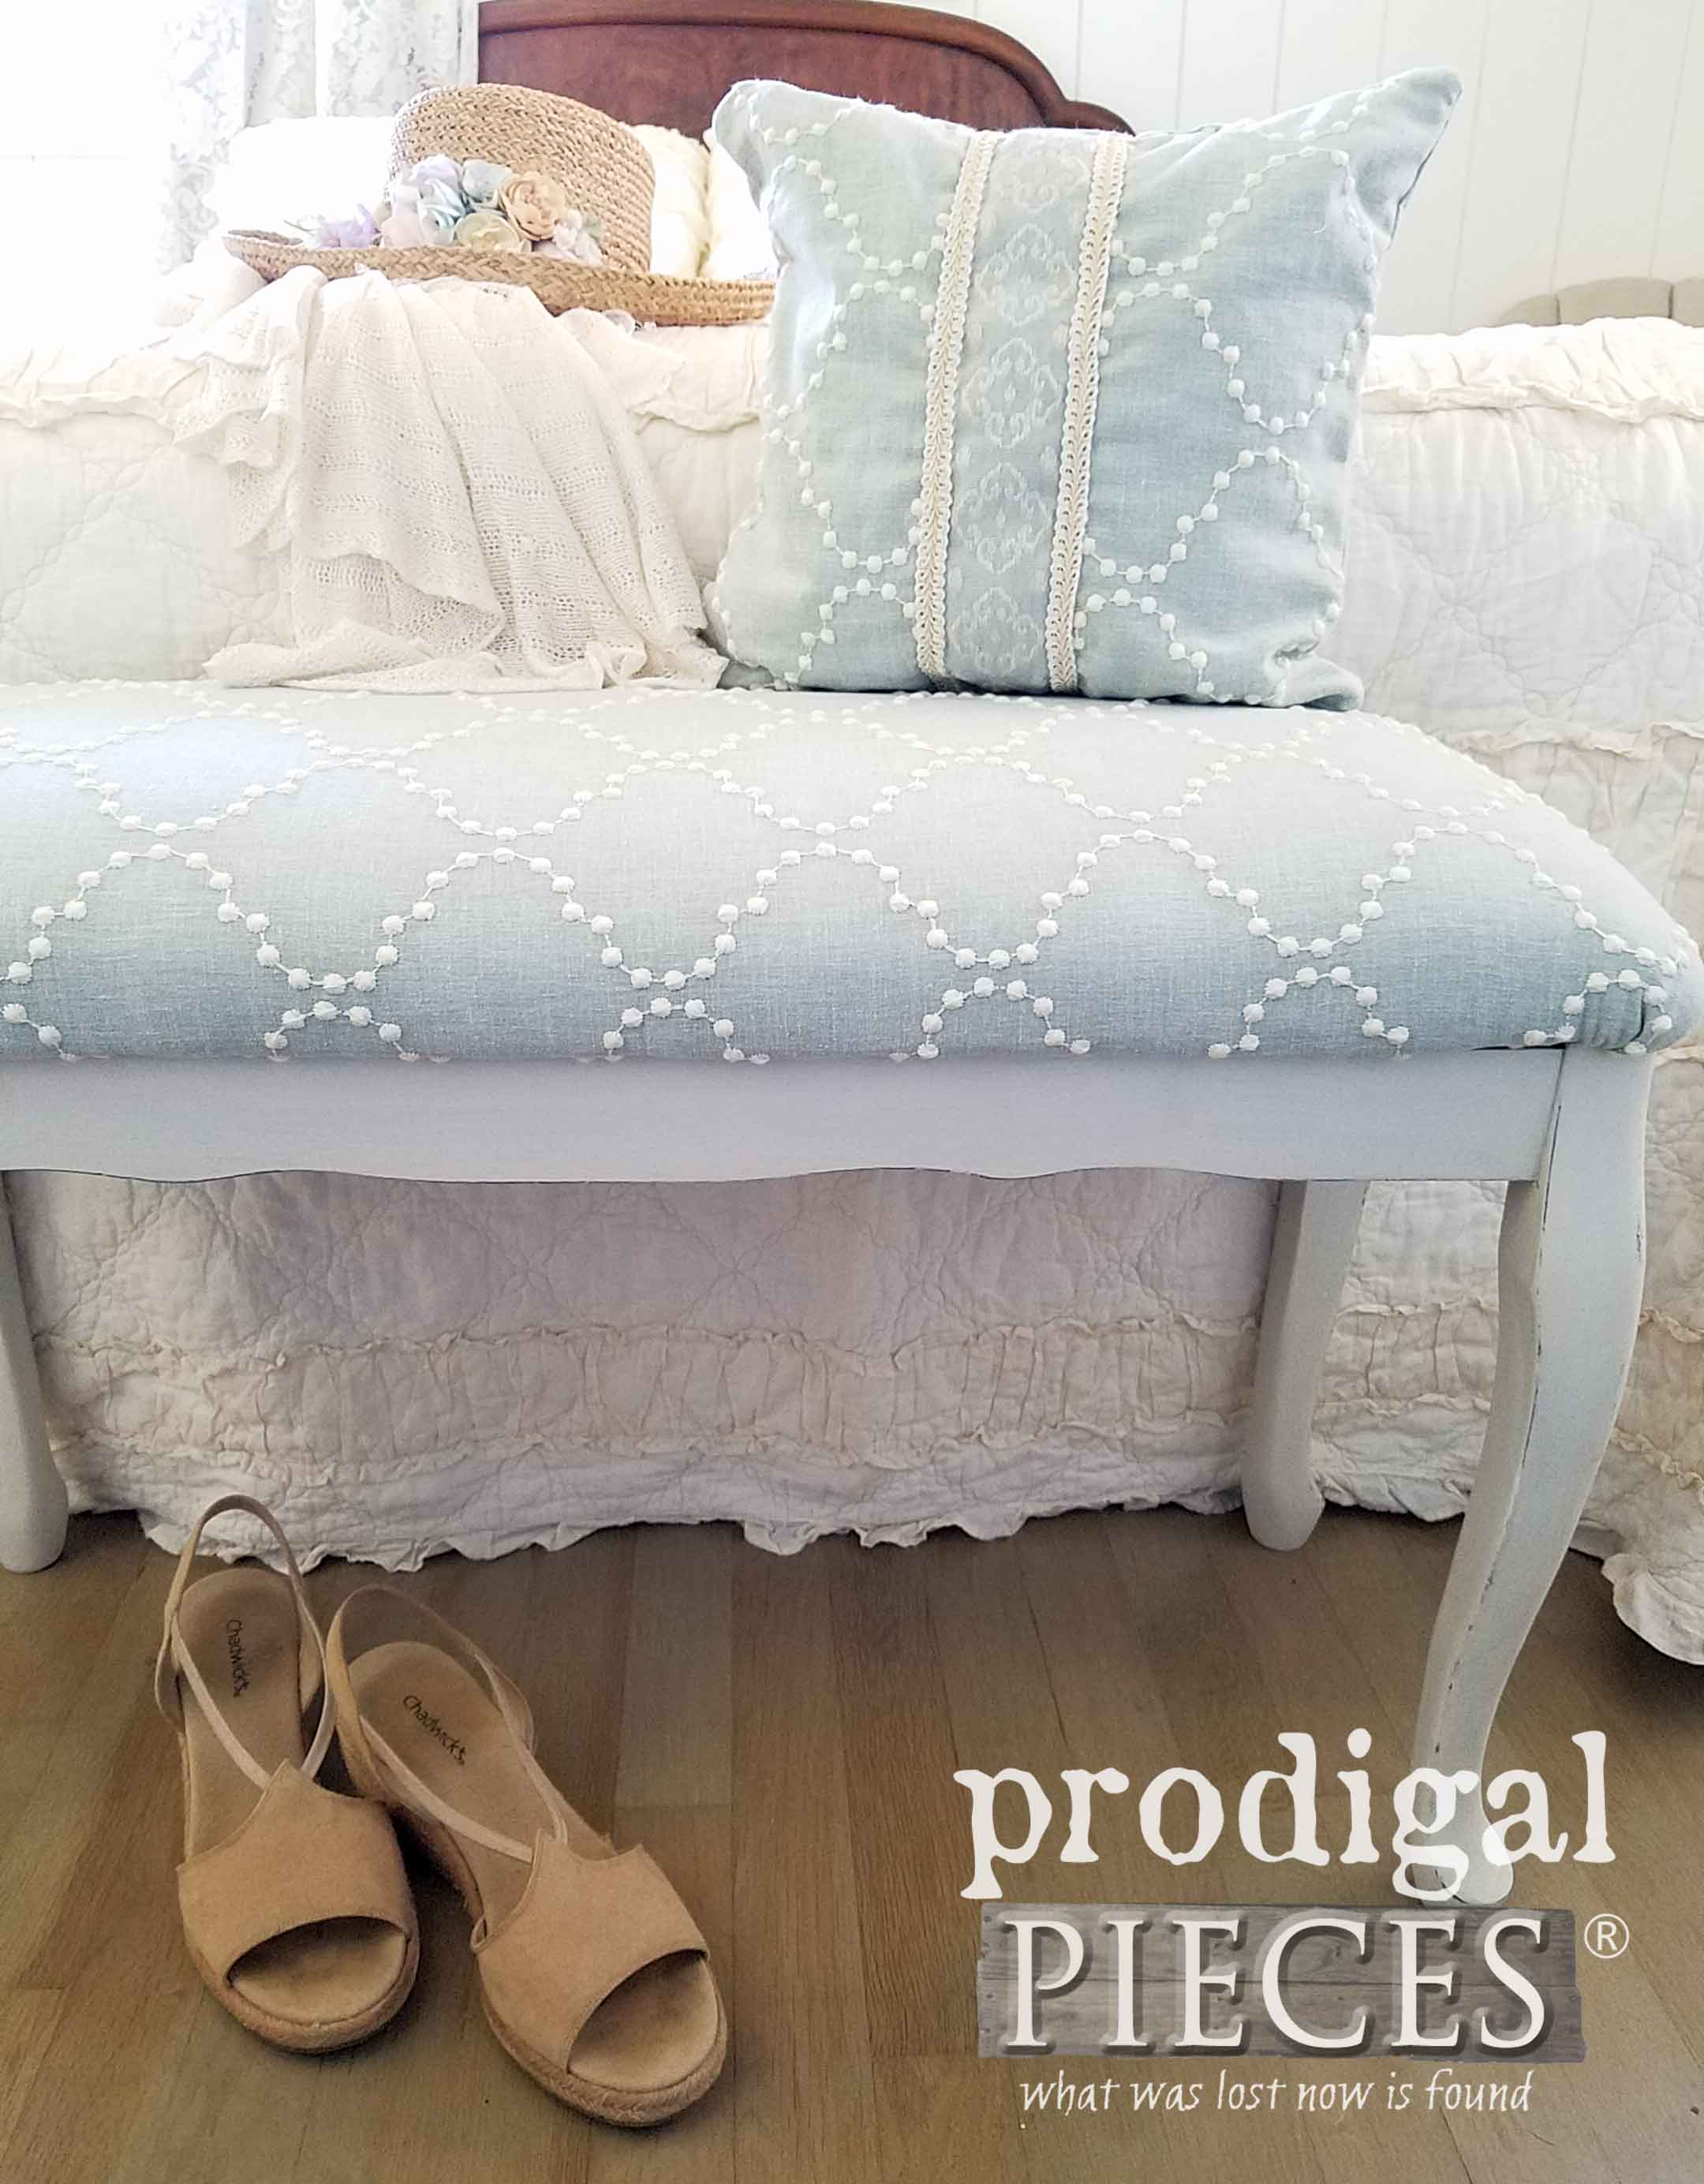 Cottage Style Upholstered Bench for Bedroom, Entry and More. Comes with Coordinating Pillow. By Larissa of Prodigal Pieces | prodigalpieces.com